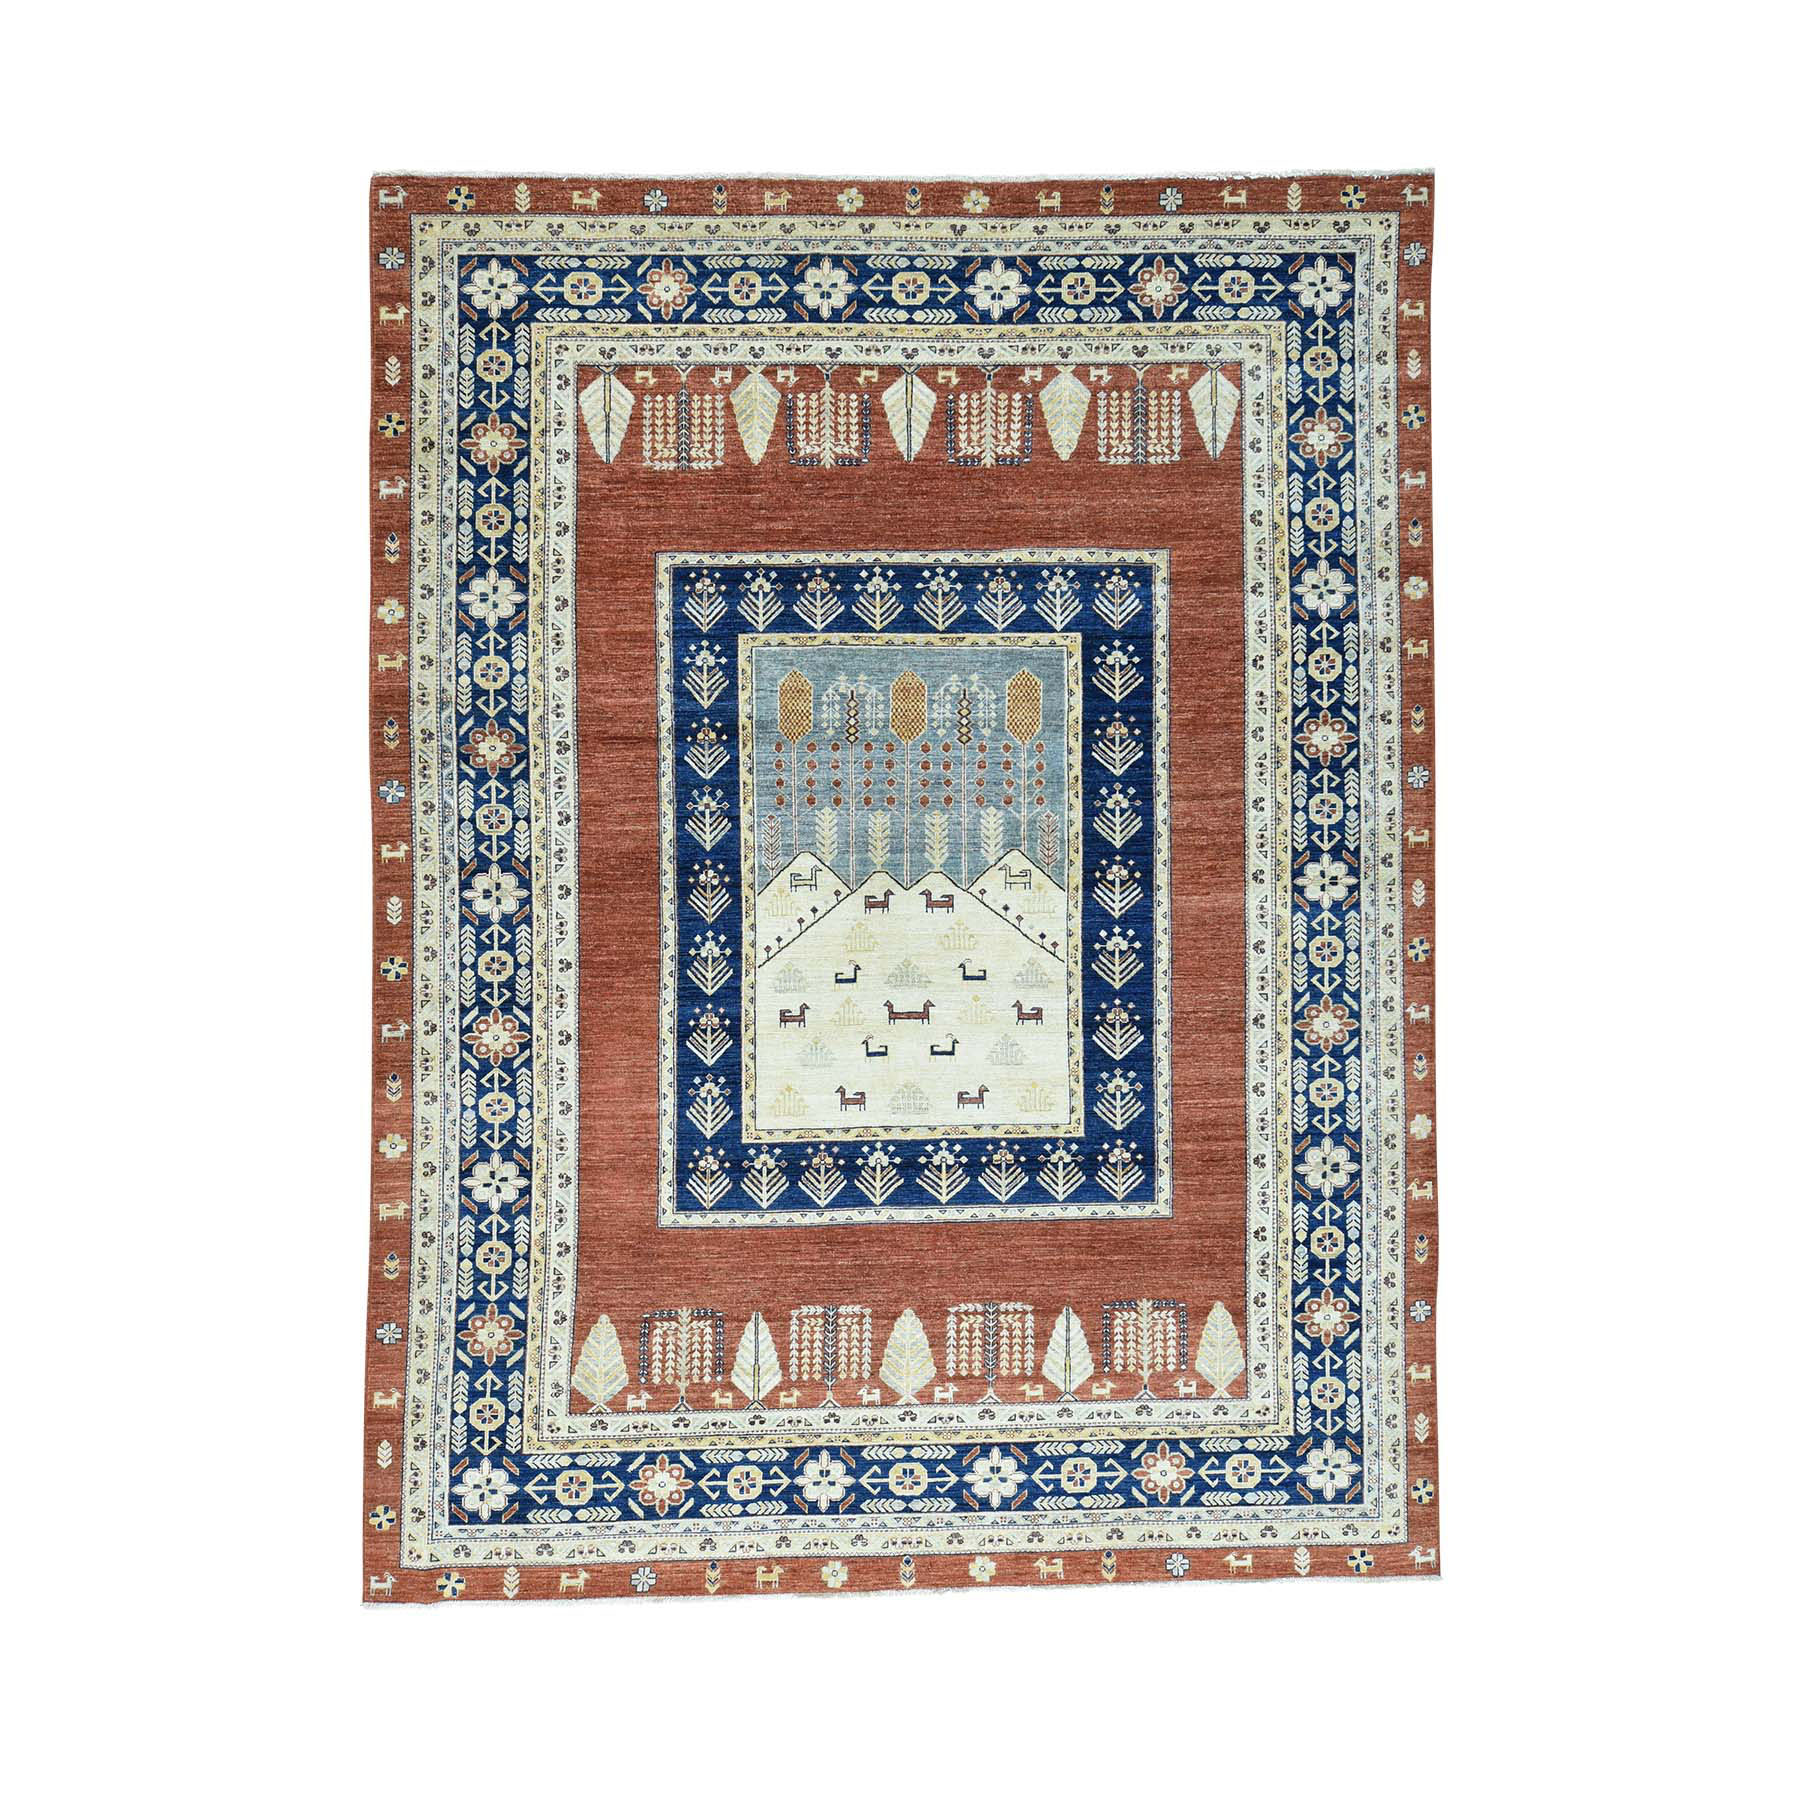 9'X12' Pictorial Tree Design Pure Wool Hand Knotted Peshawar Rug moac0c6b